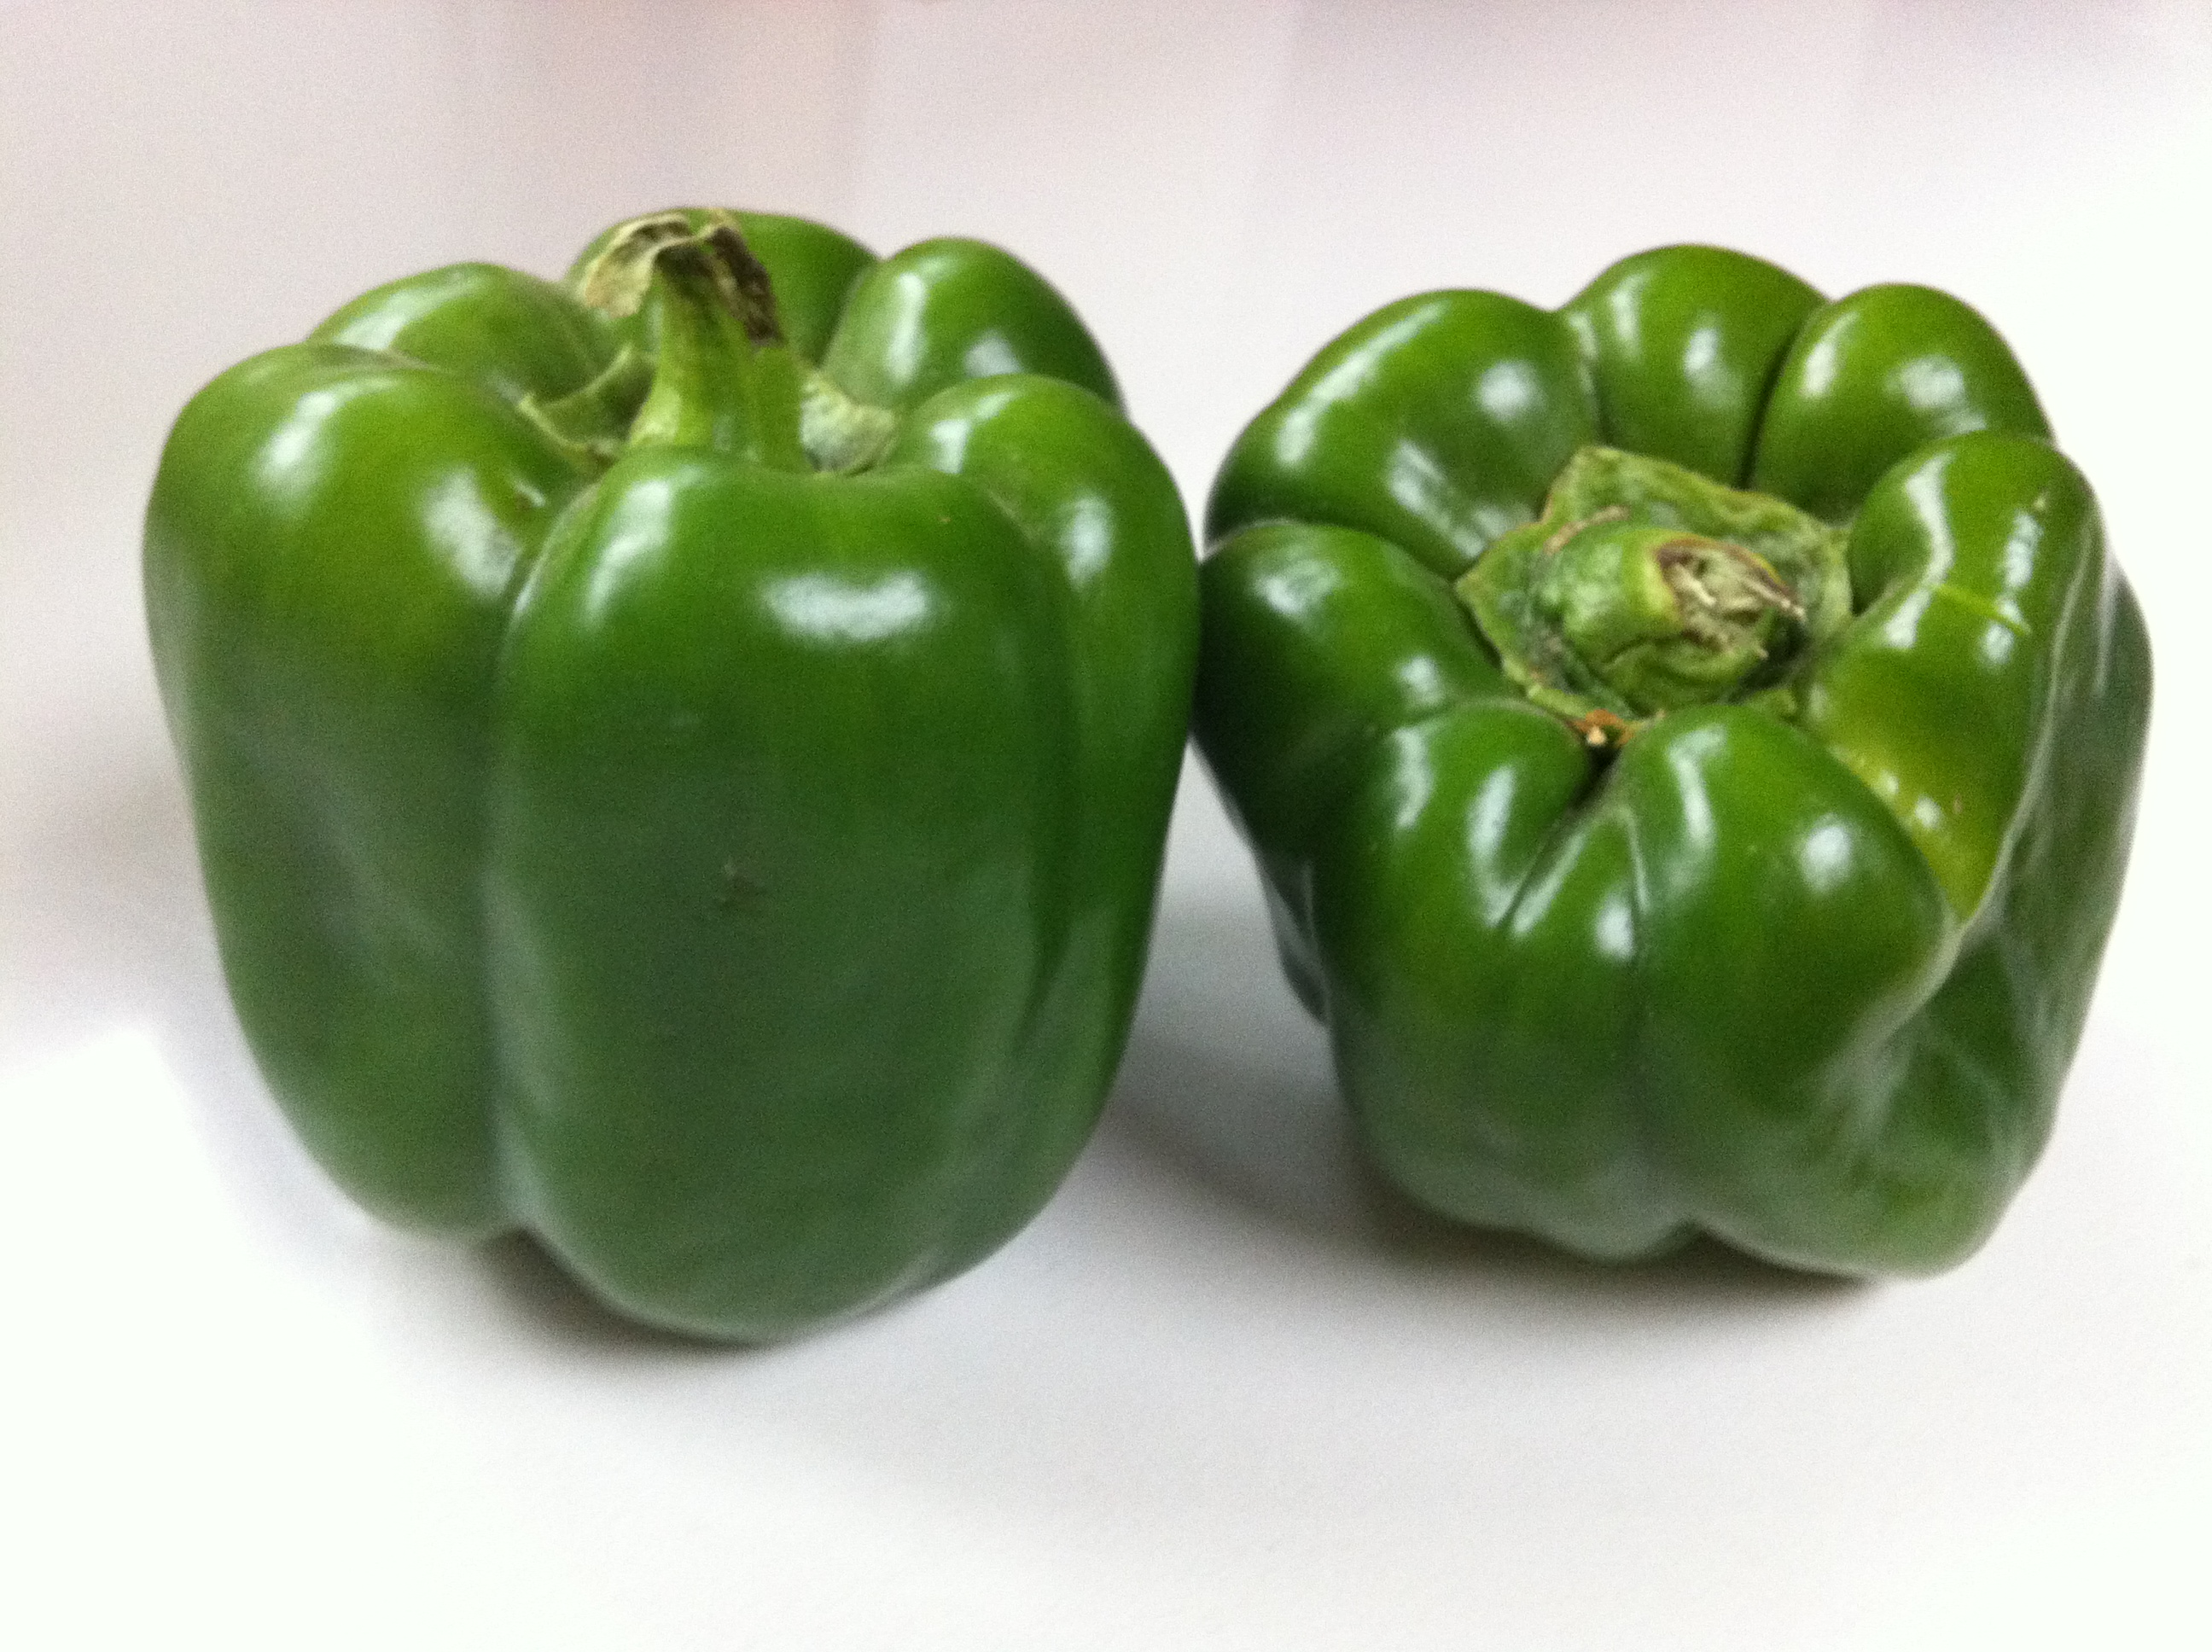 green pepper The green pepper has everything you need to make outdoor clothing and gear  using green pepper patterns.